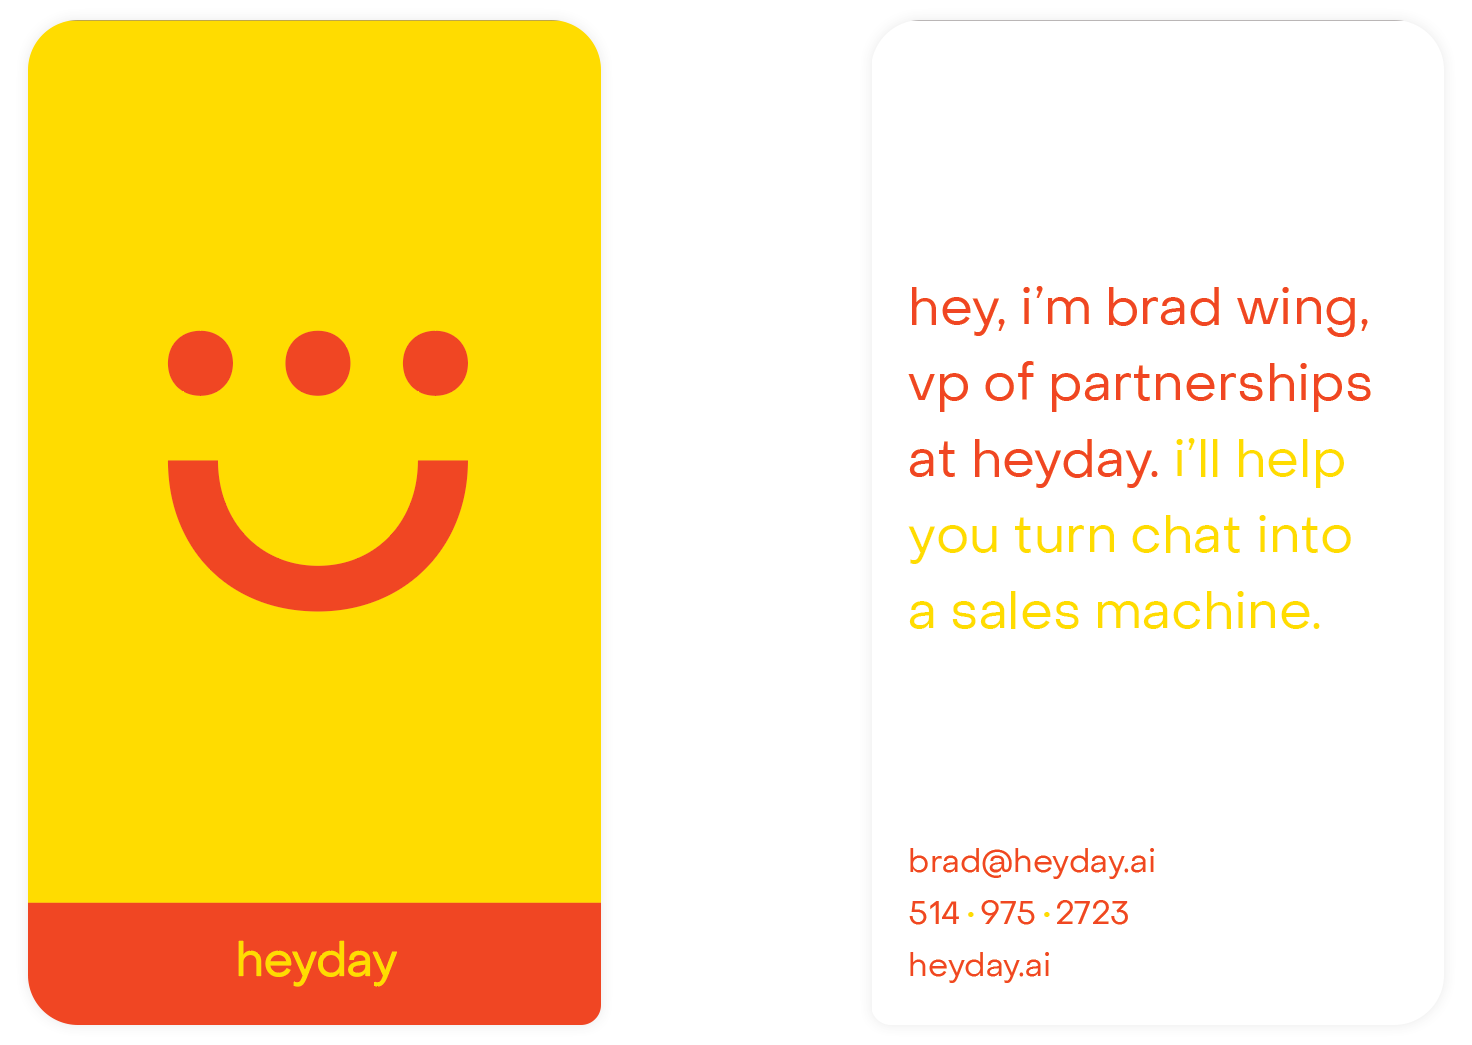 Heyday business cards with the logo and text.